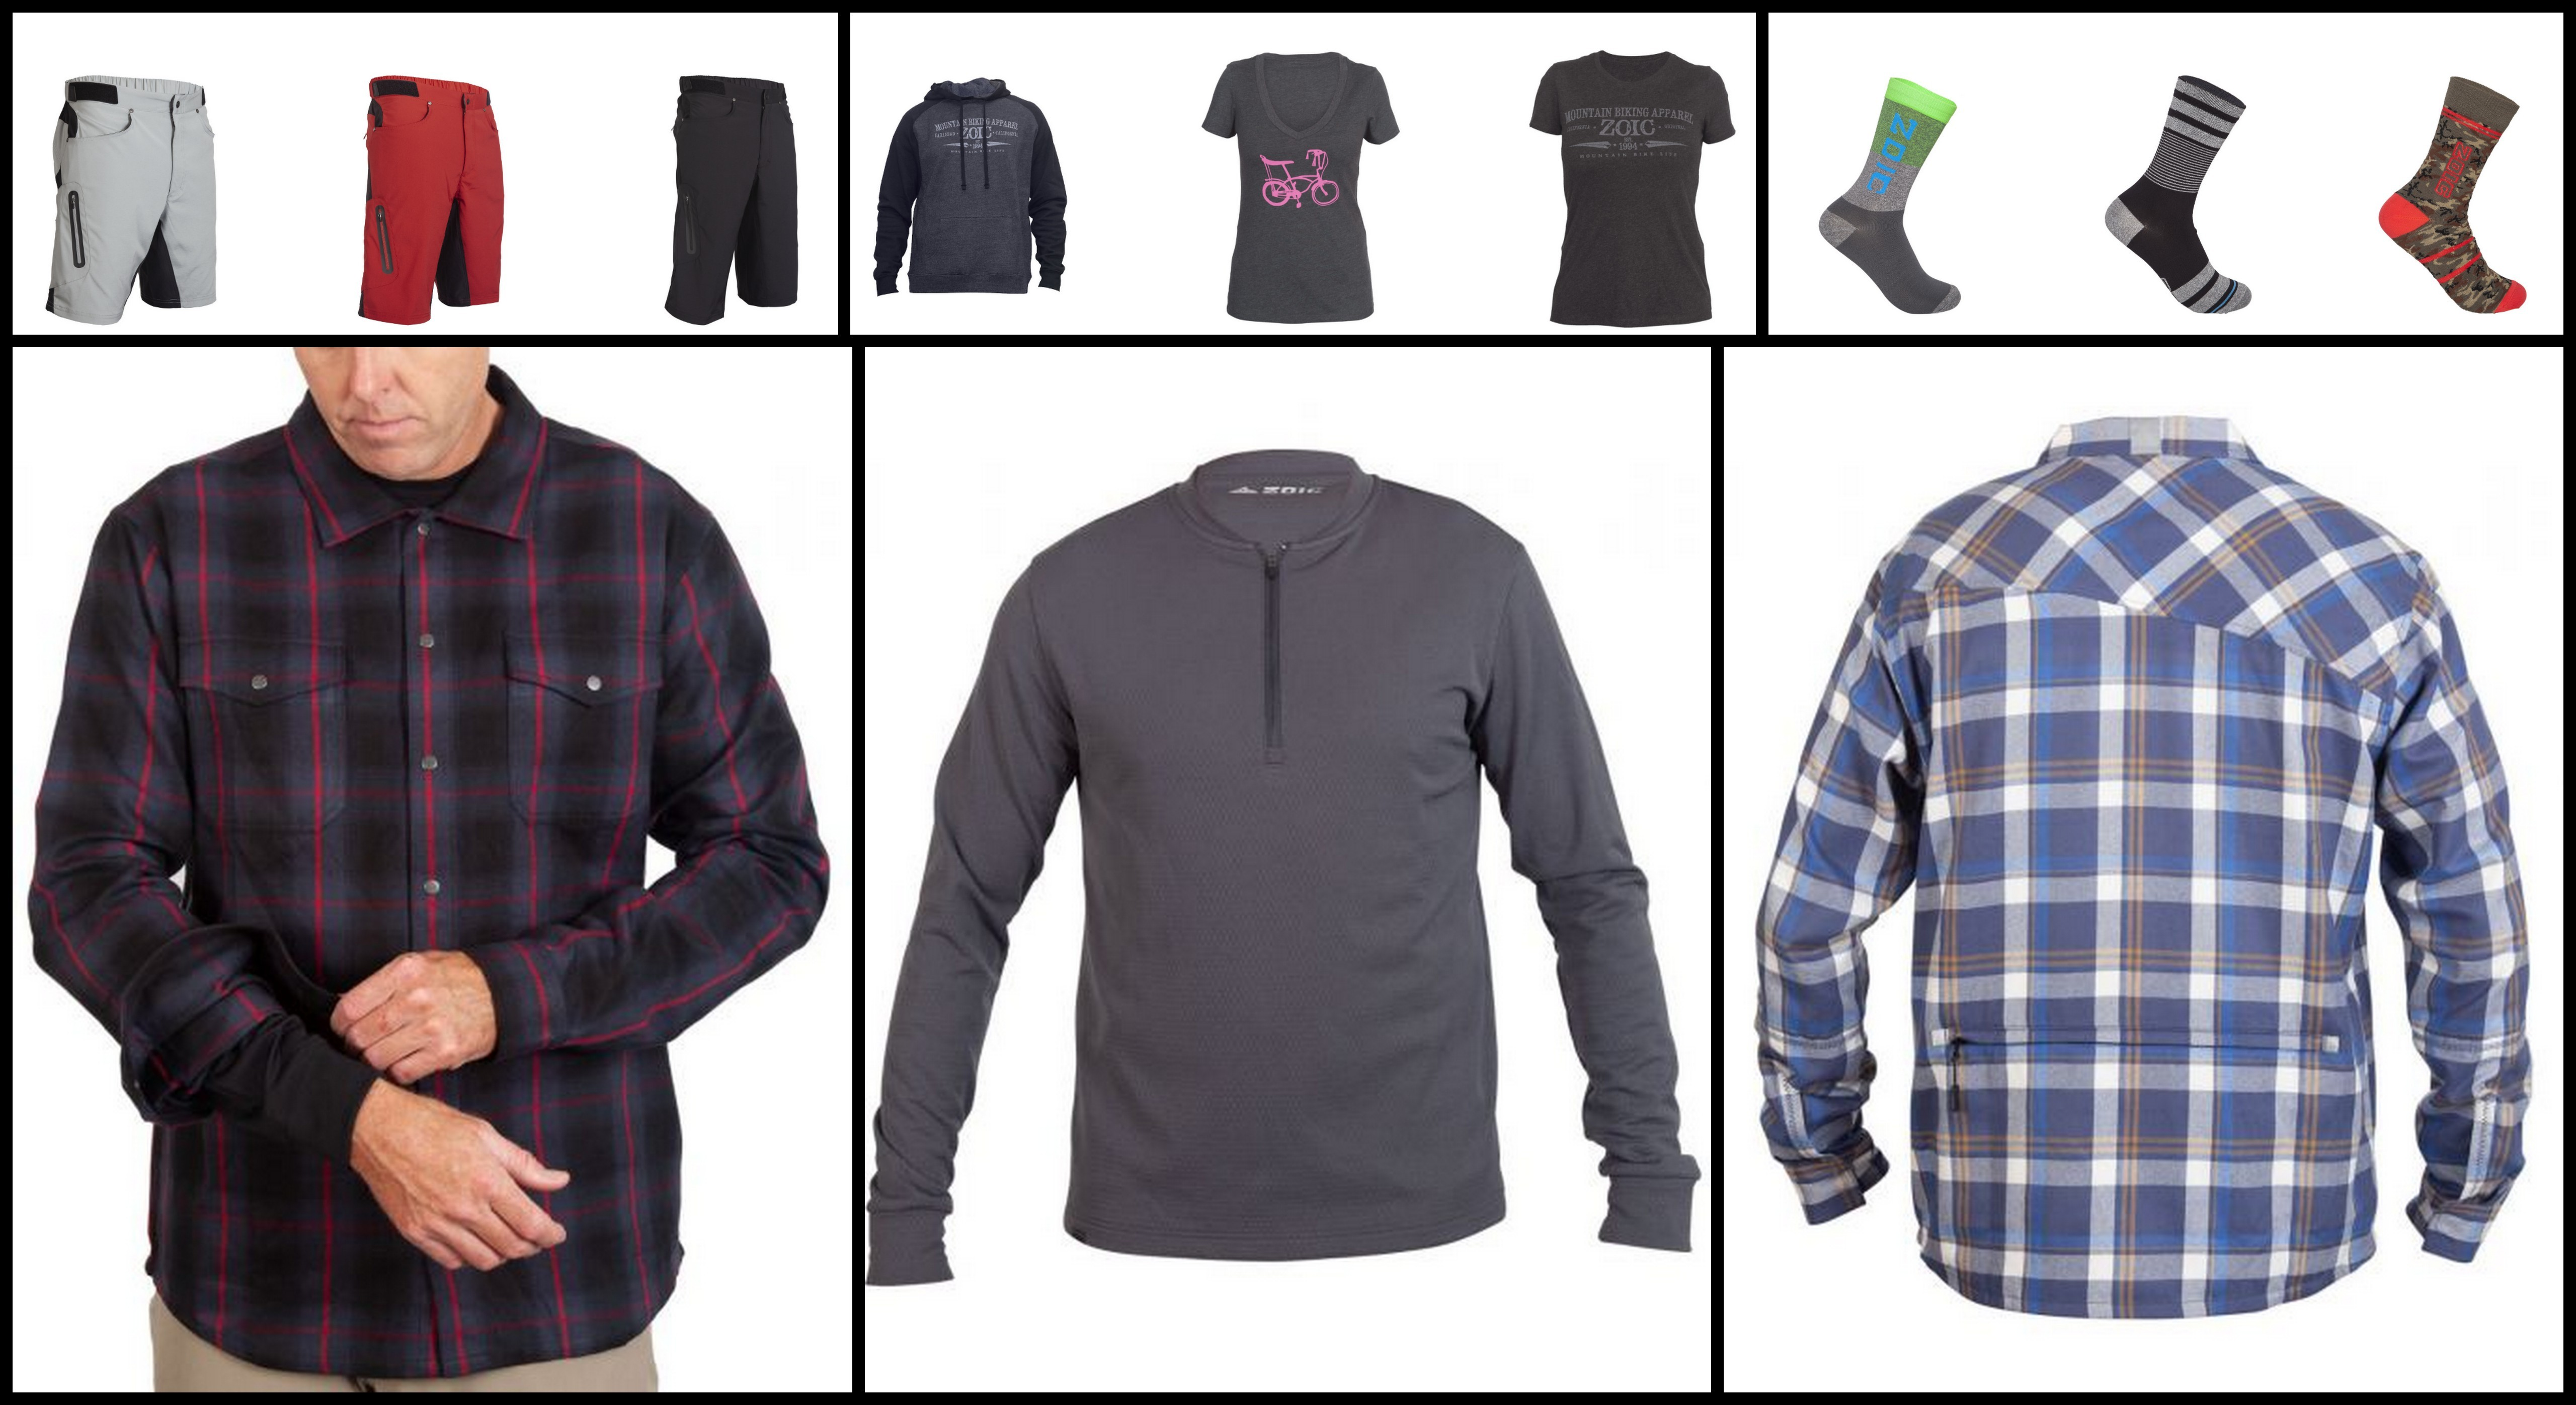 480a1b011  250 Zoic Clothing package - Mtbr Holiday Giveaway- Mtbr.com